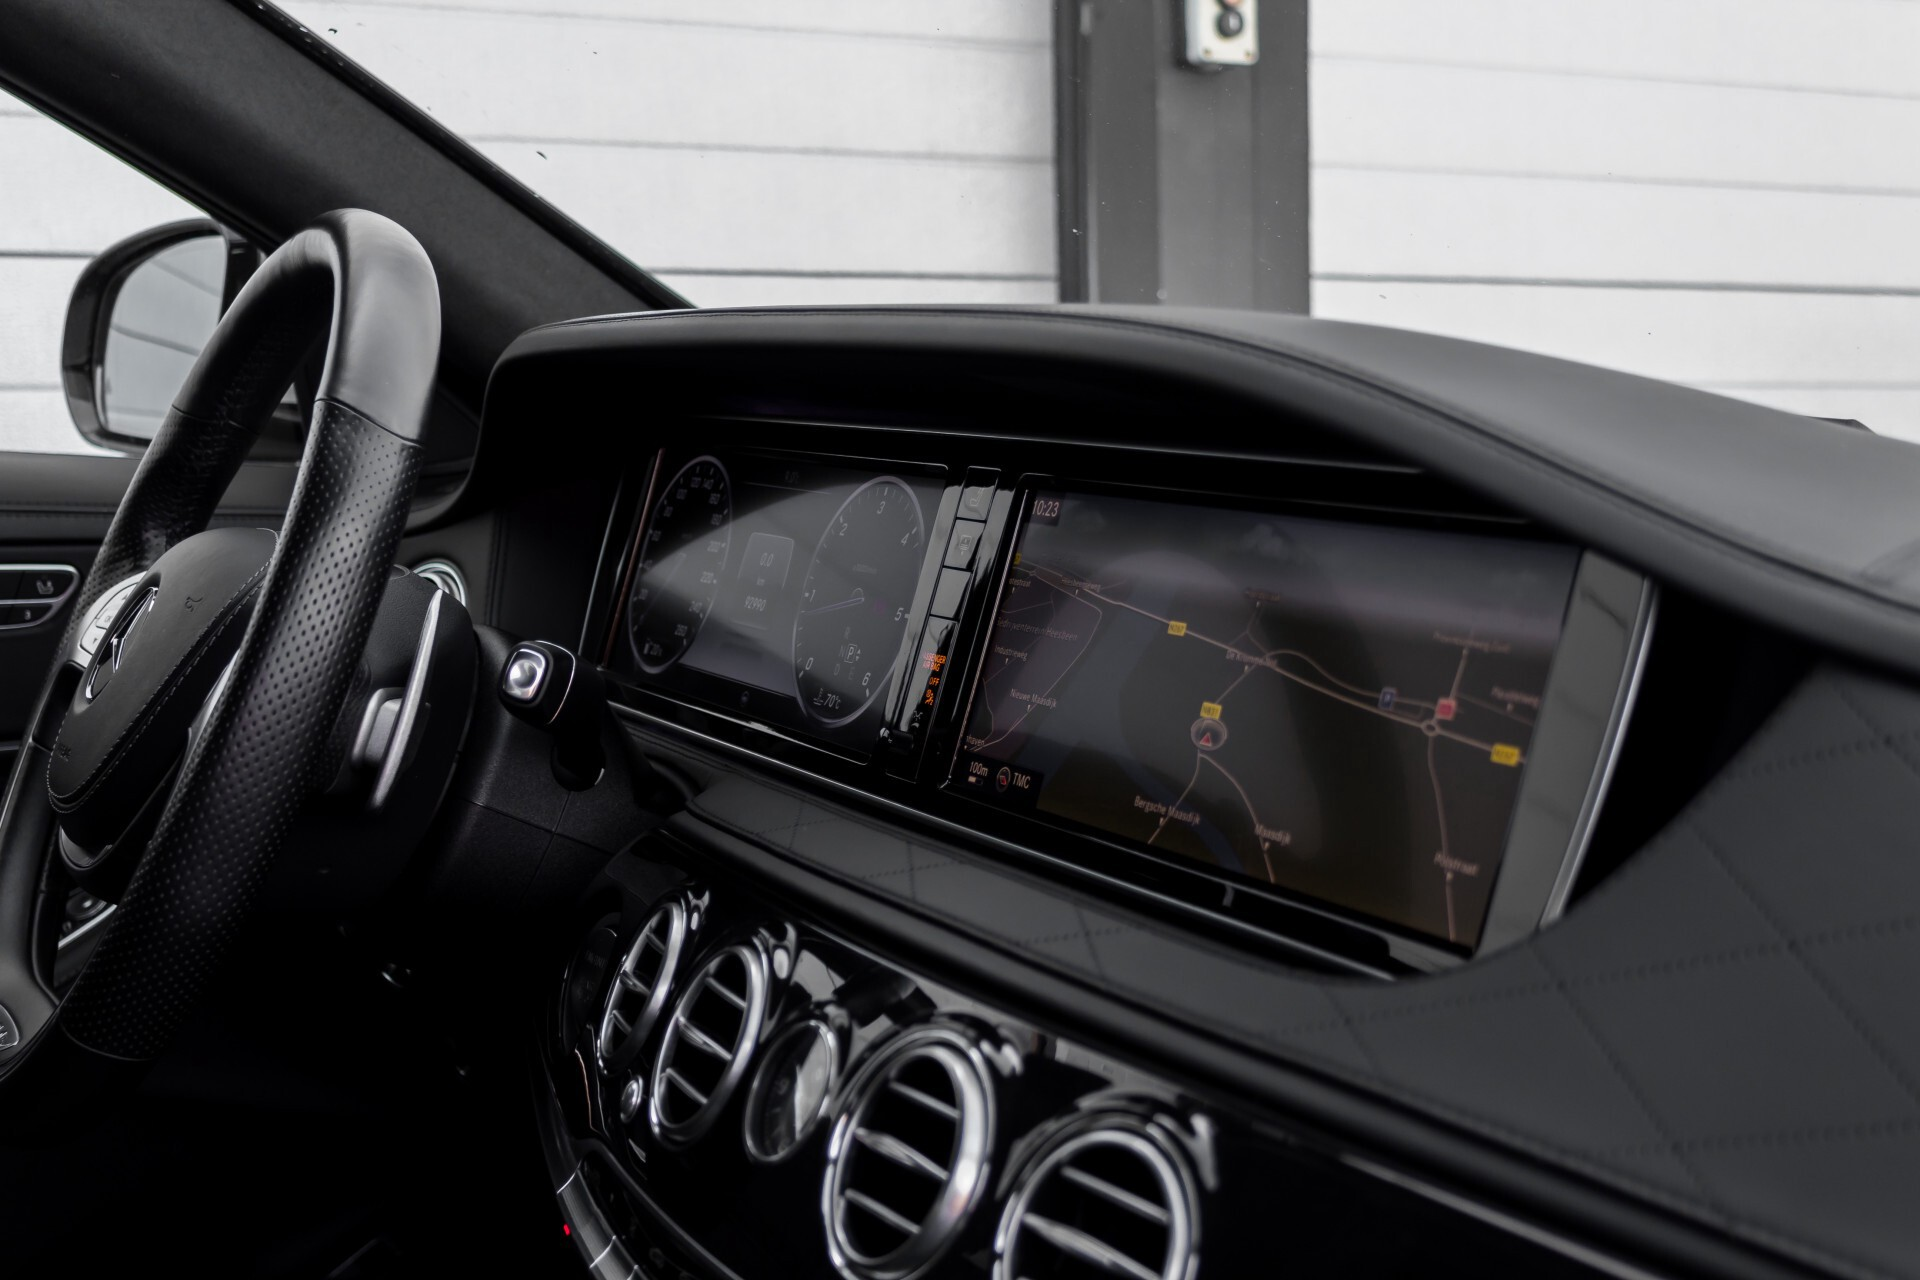 Mercedes-Benz S-Klasse 350 Bluetec 4-M AMG Plus Exclusive Distronic/Keyless/Panorama Aut7 Foto 16